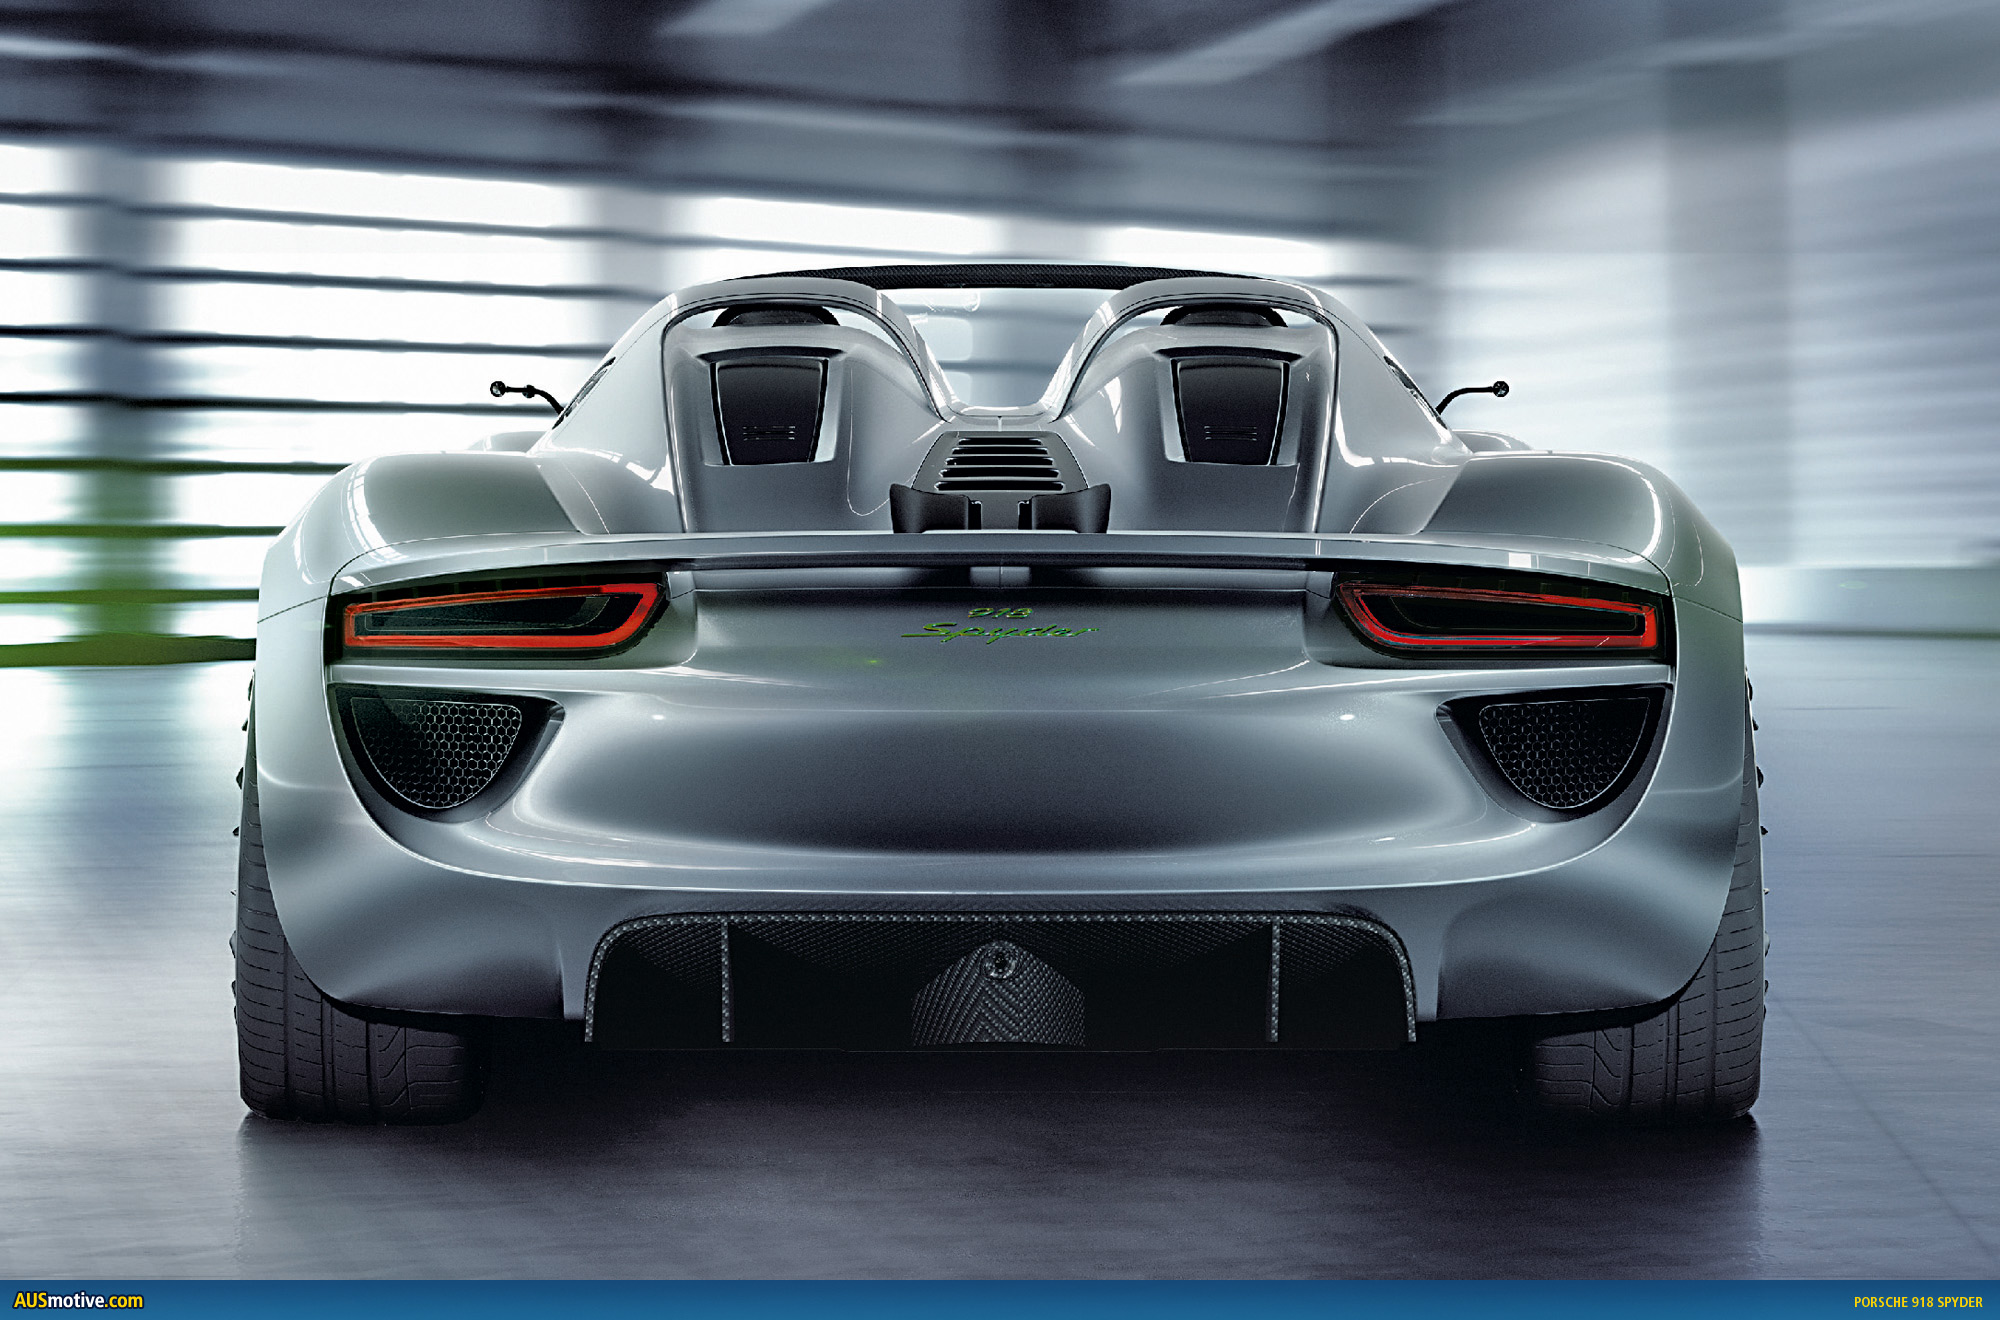 AUSmotive.com » Geneva: Porsche 918 Spyder with hybrid drive on